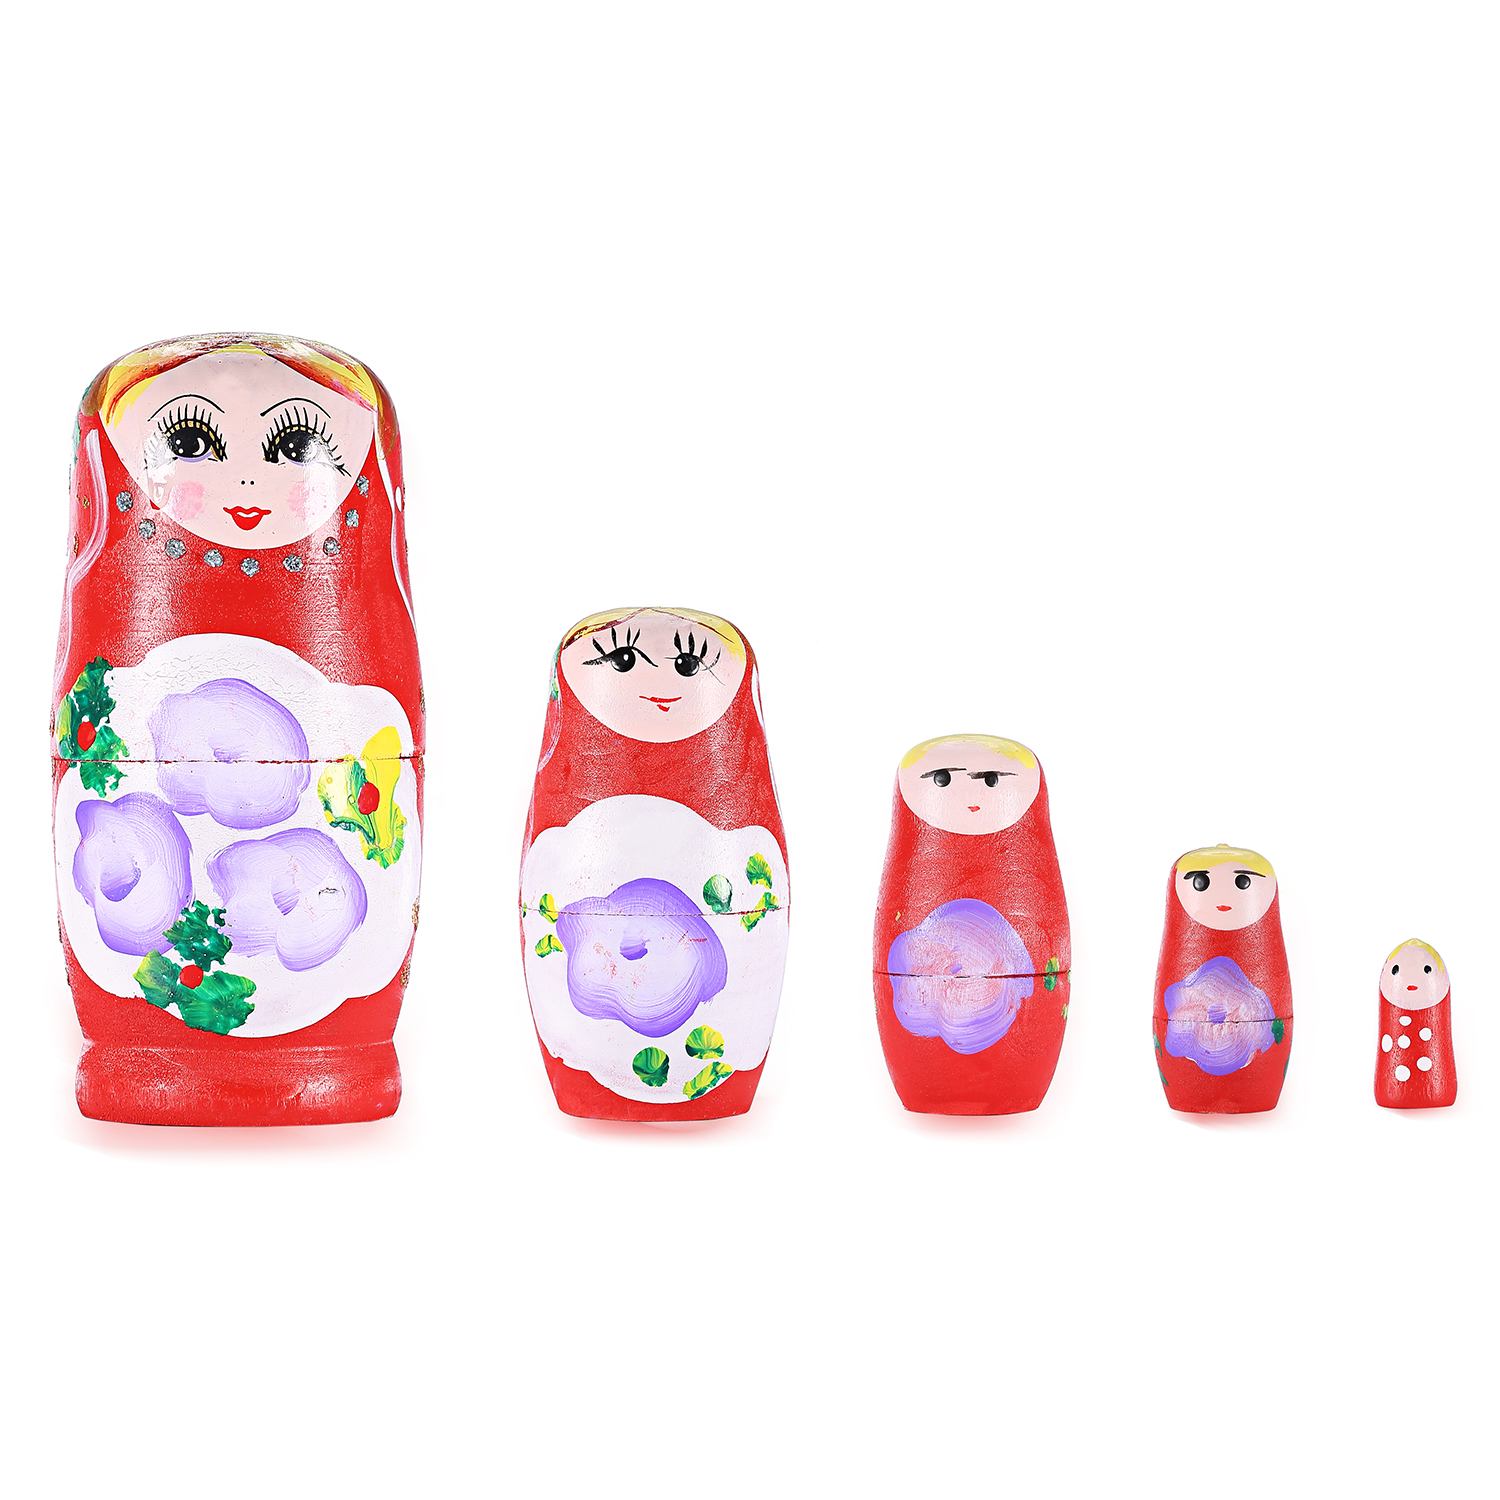 cutie wooden nesting dolls matryoshka madness russian doll